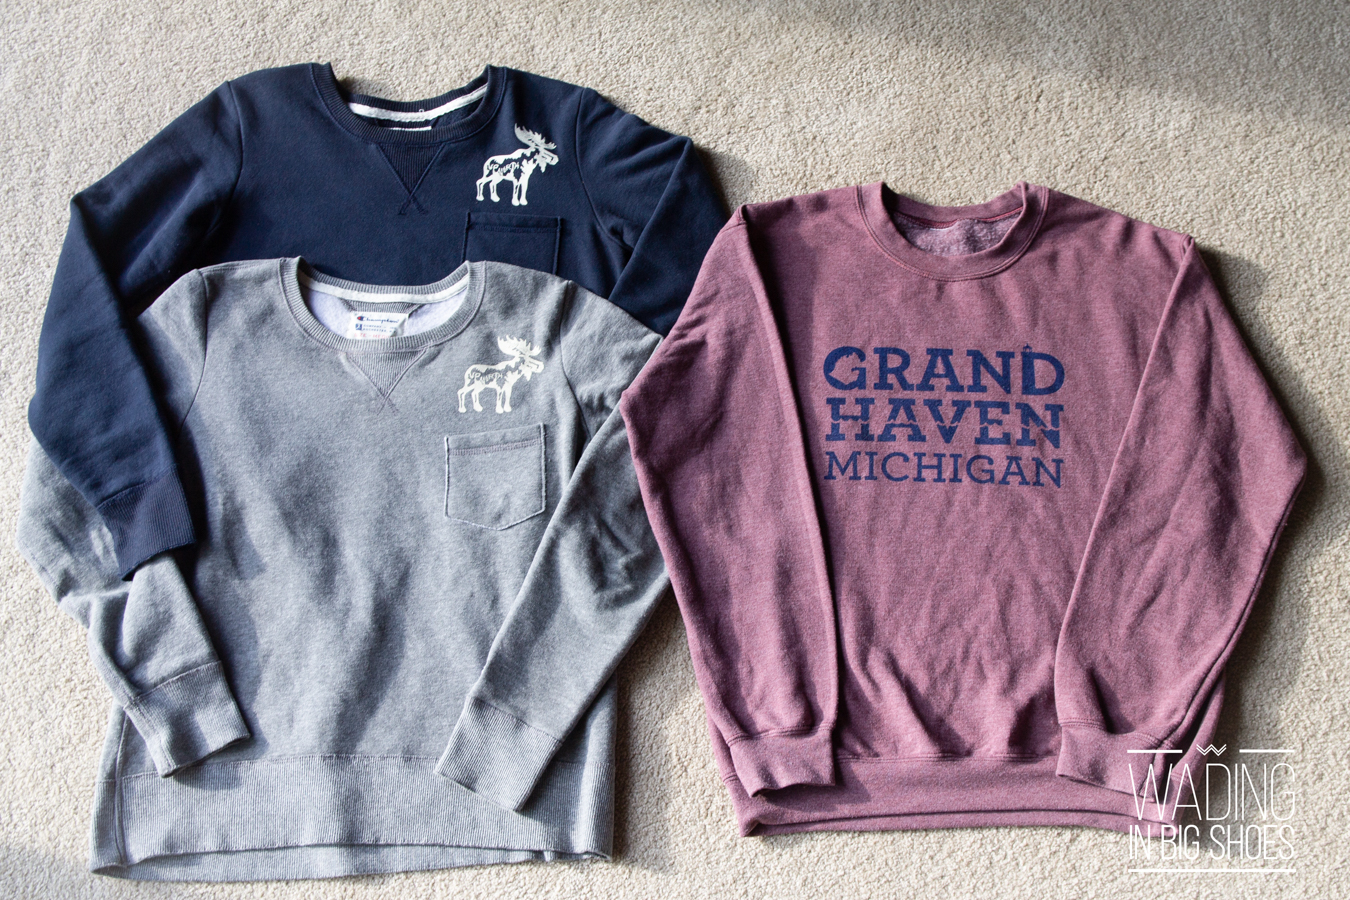 Wading in Big Shoes-Local Fashion Love: My (Mostly Detroit) Michigan T-Shirt Collection